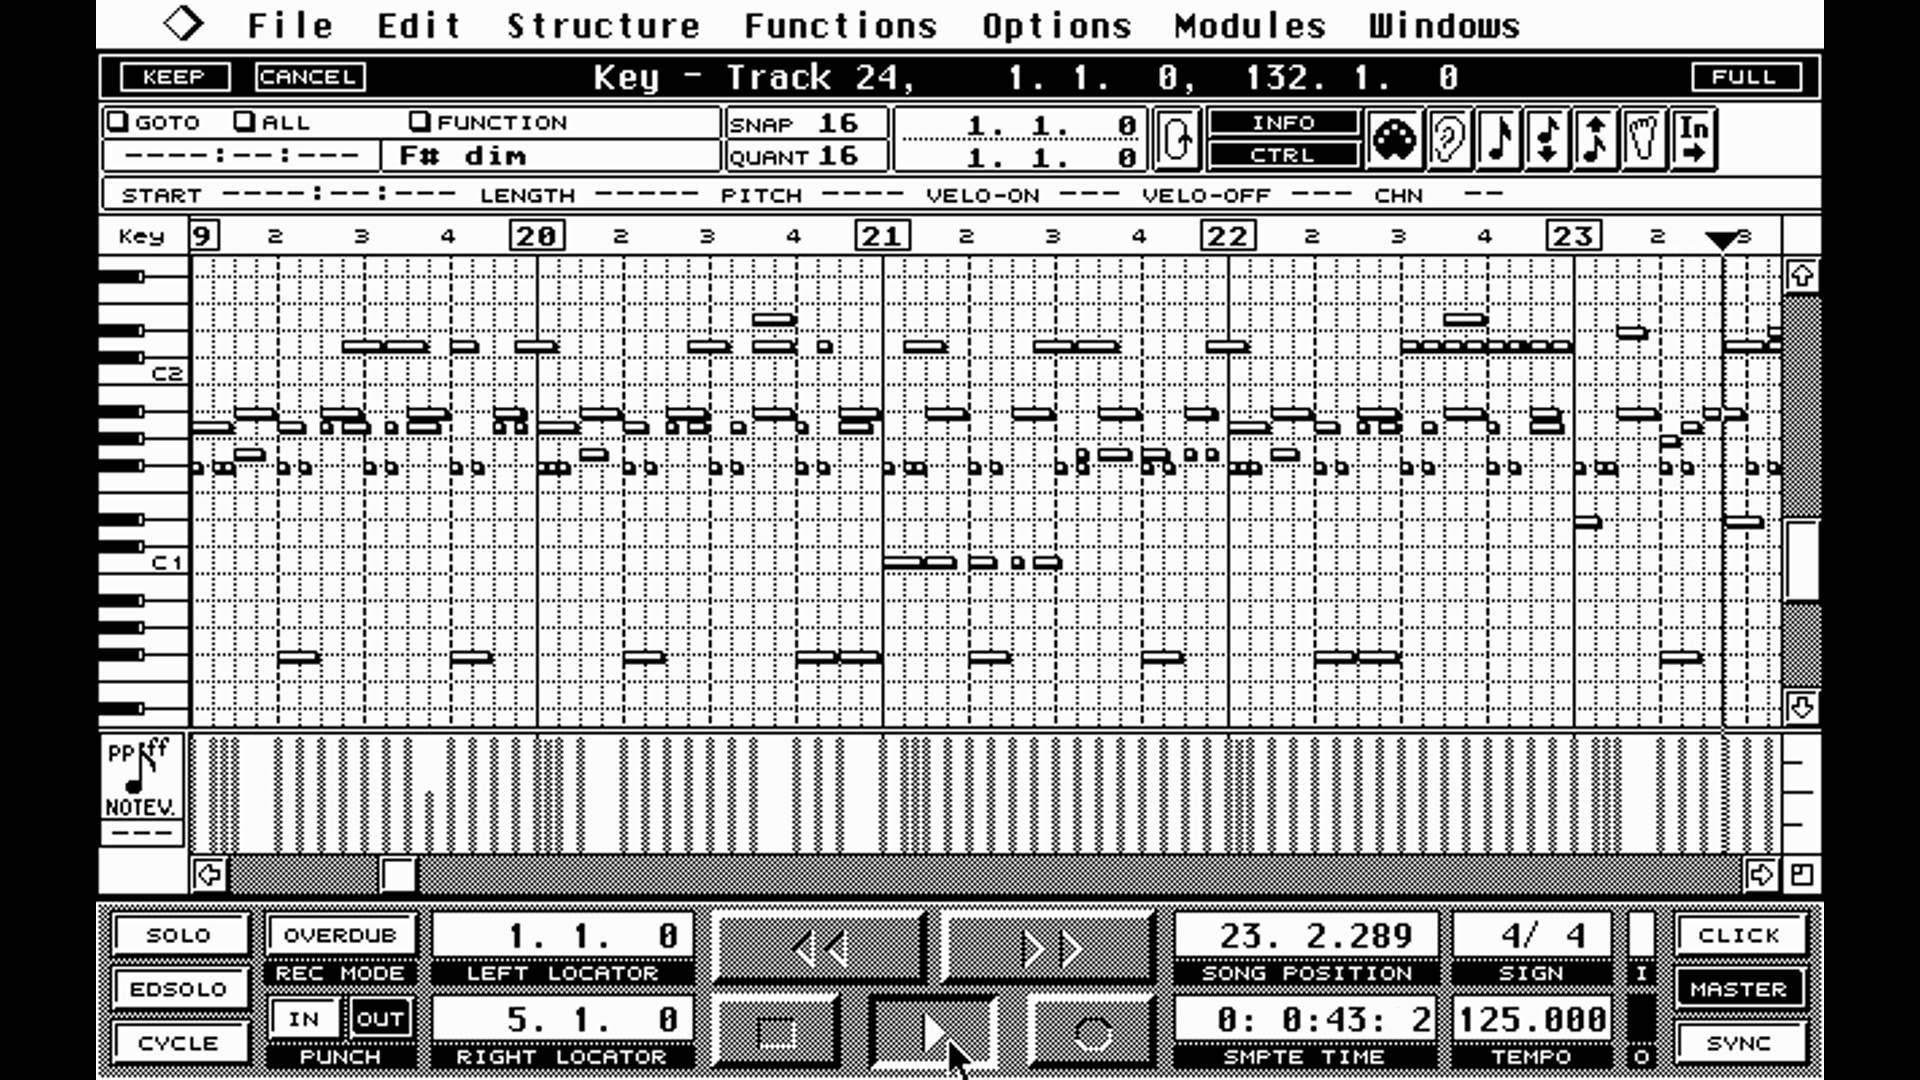 These 7 Old School Production Software Interfaces Are Amazing - VICE